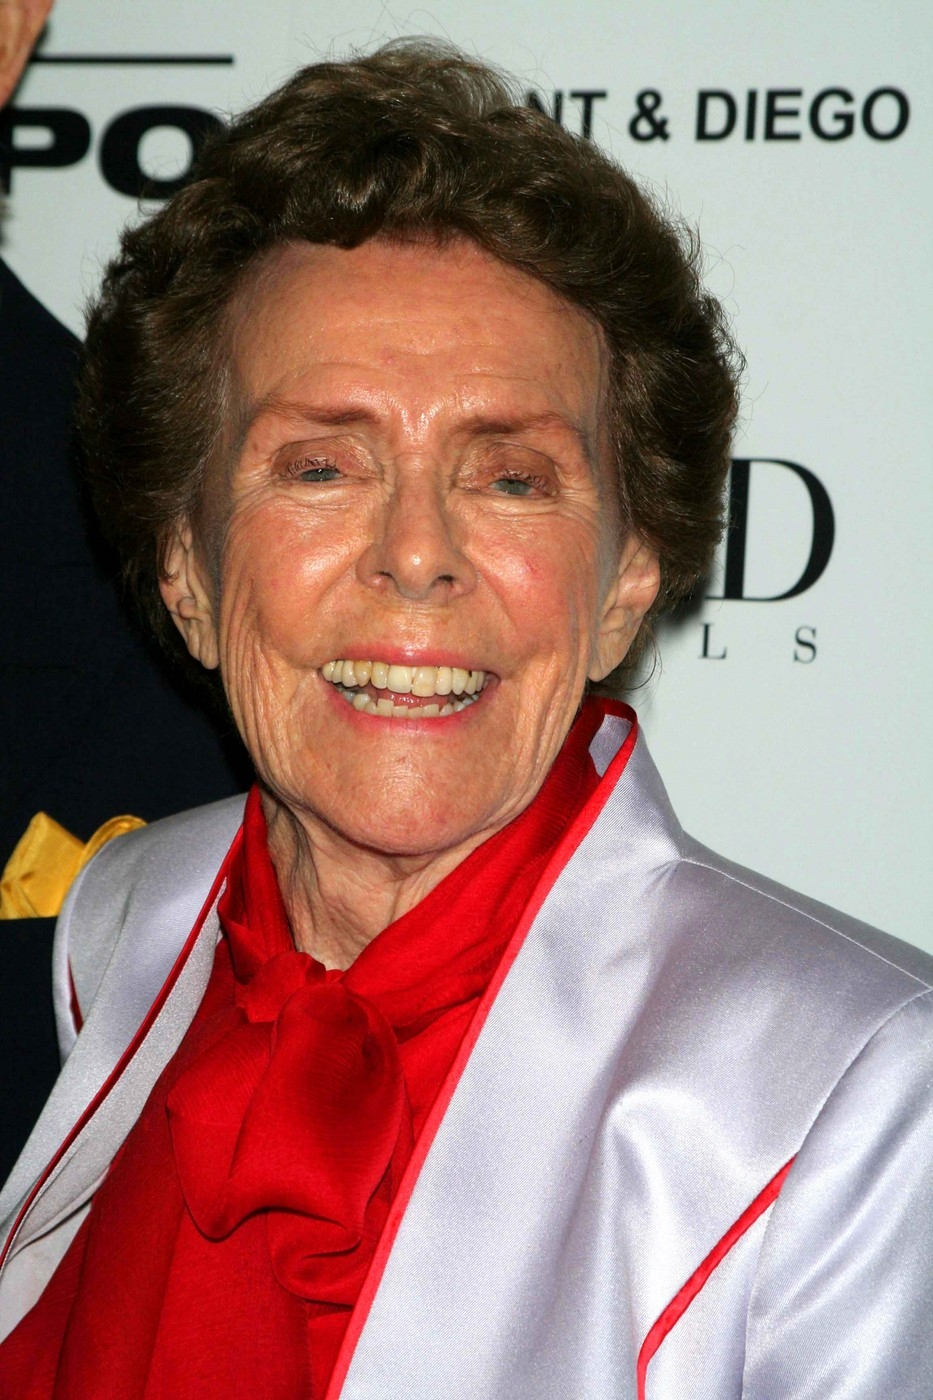 Eileen Ford 1922-2014 Founder of Ford Models